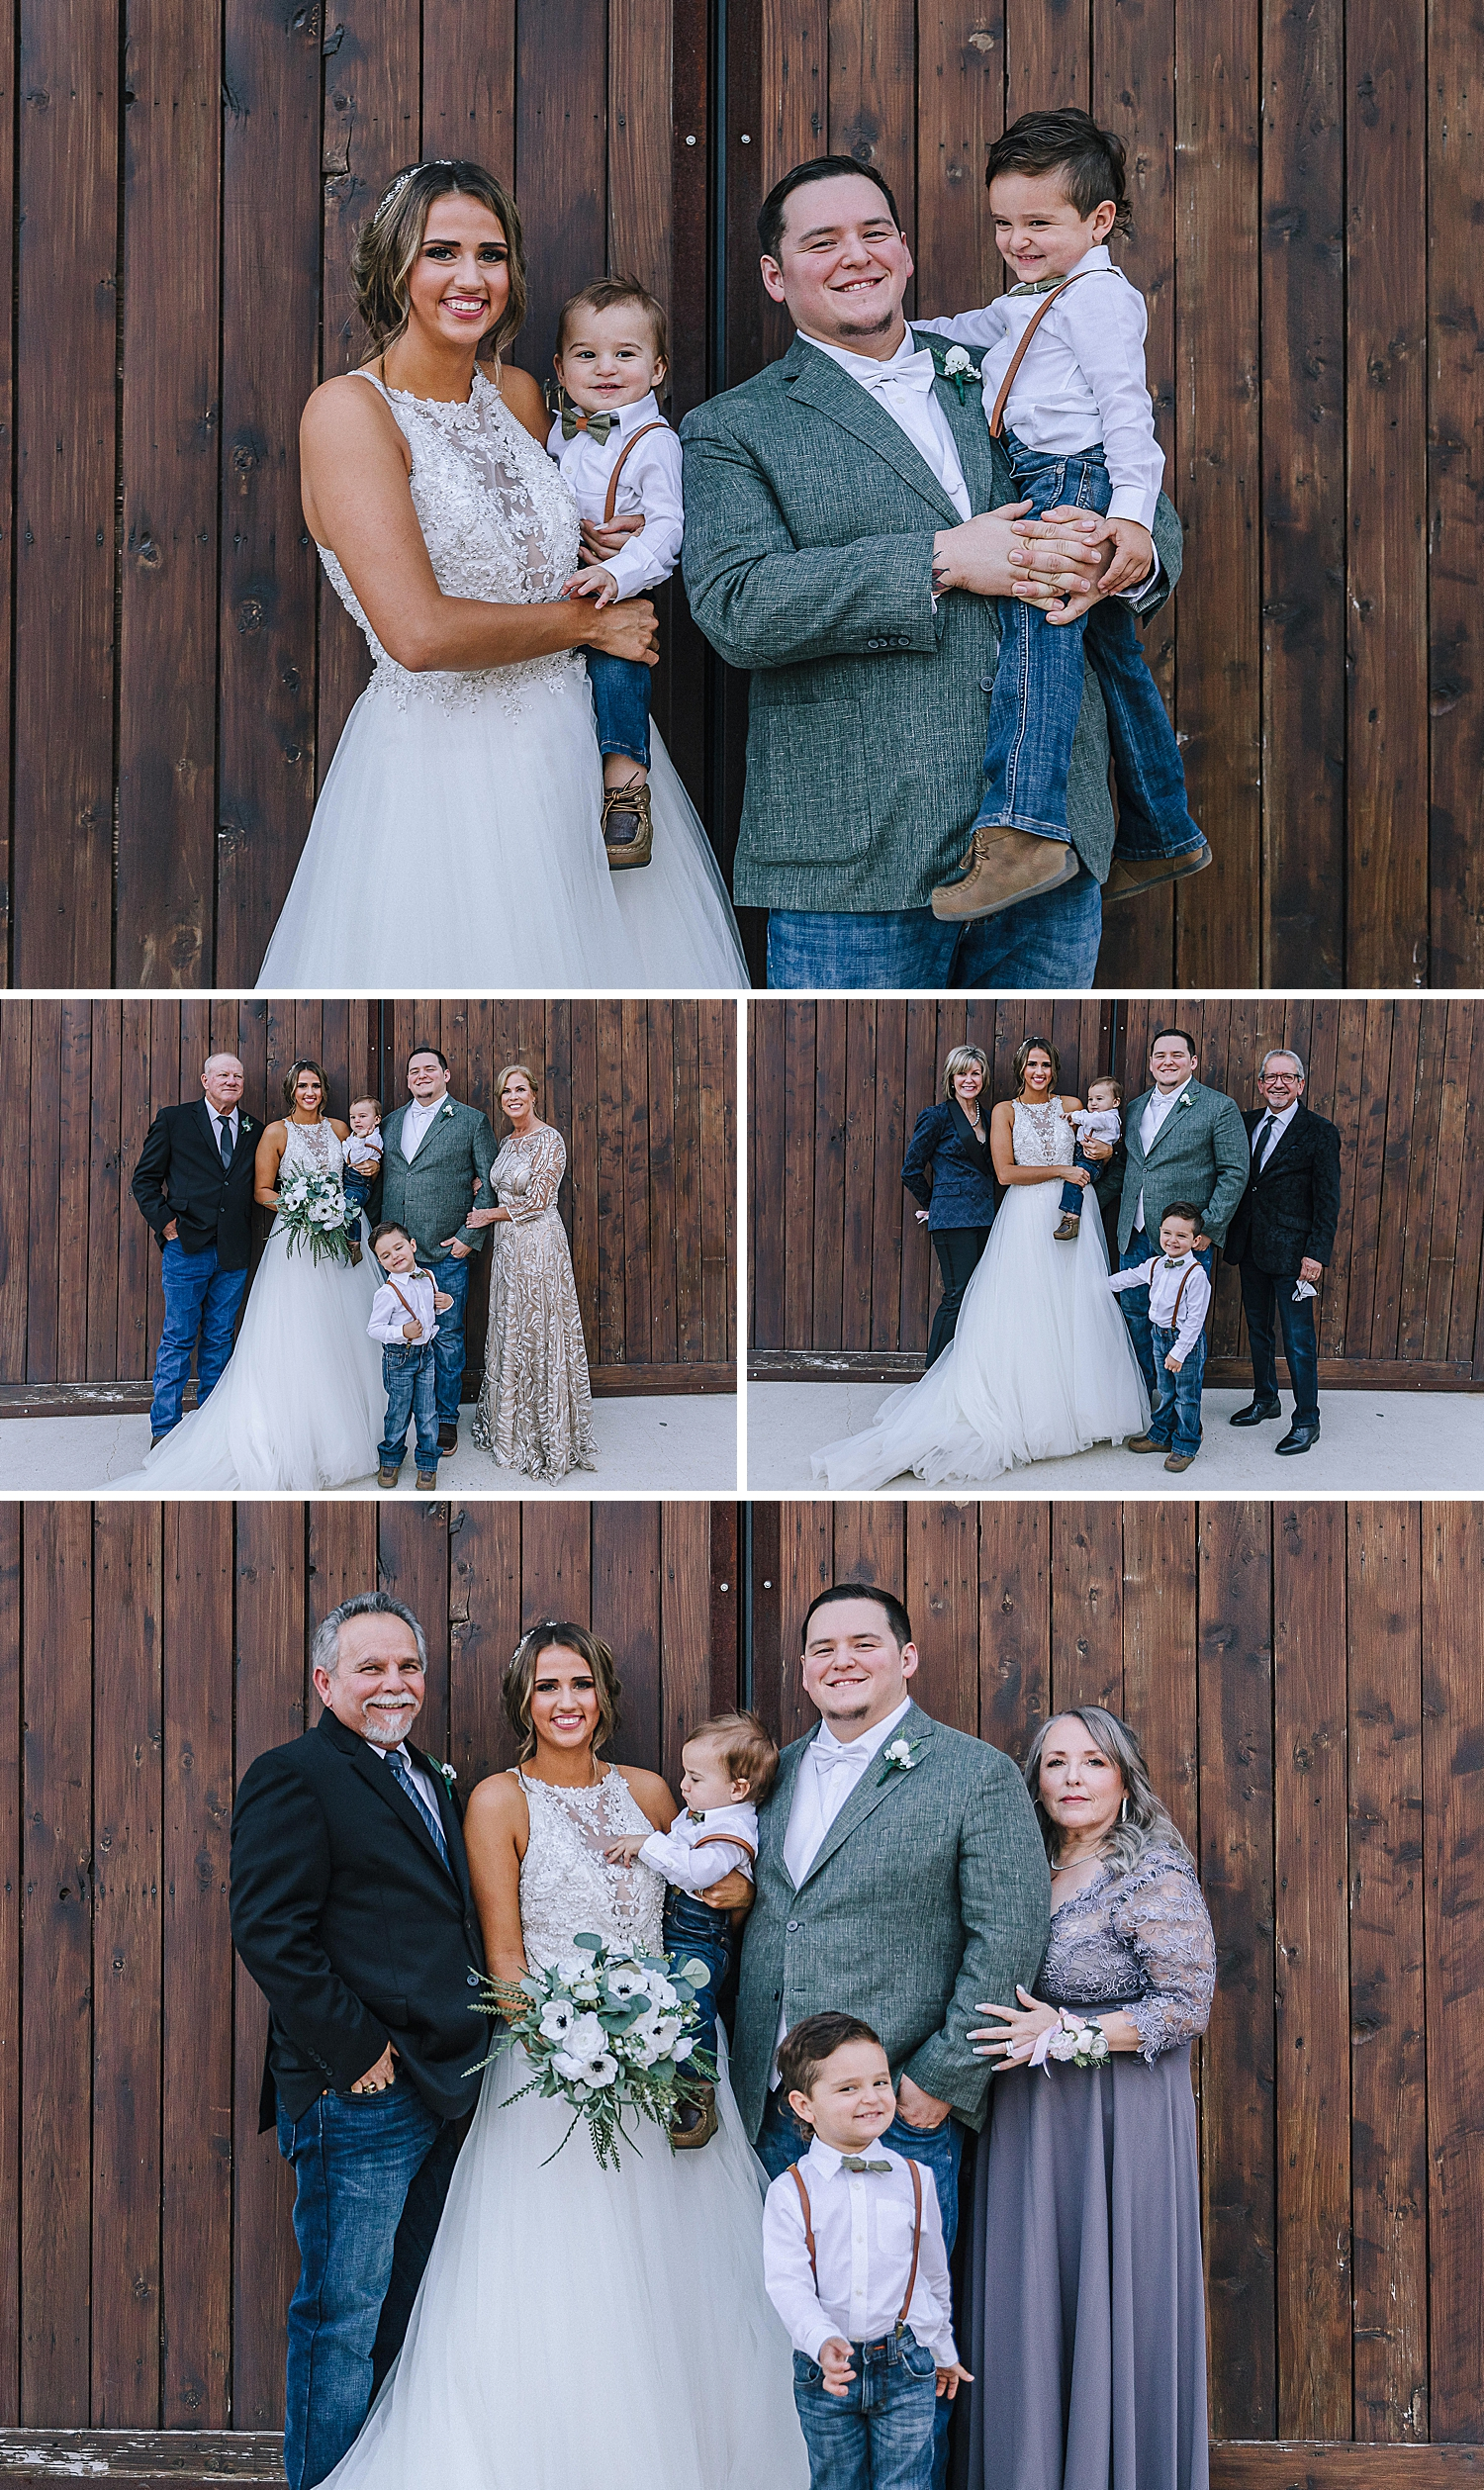 Allen-Farmhaus-New-Braunfels-Wedding-Carly-Barton-Photography_0090.jpg